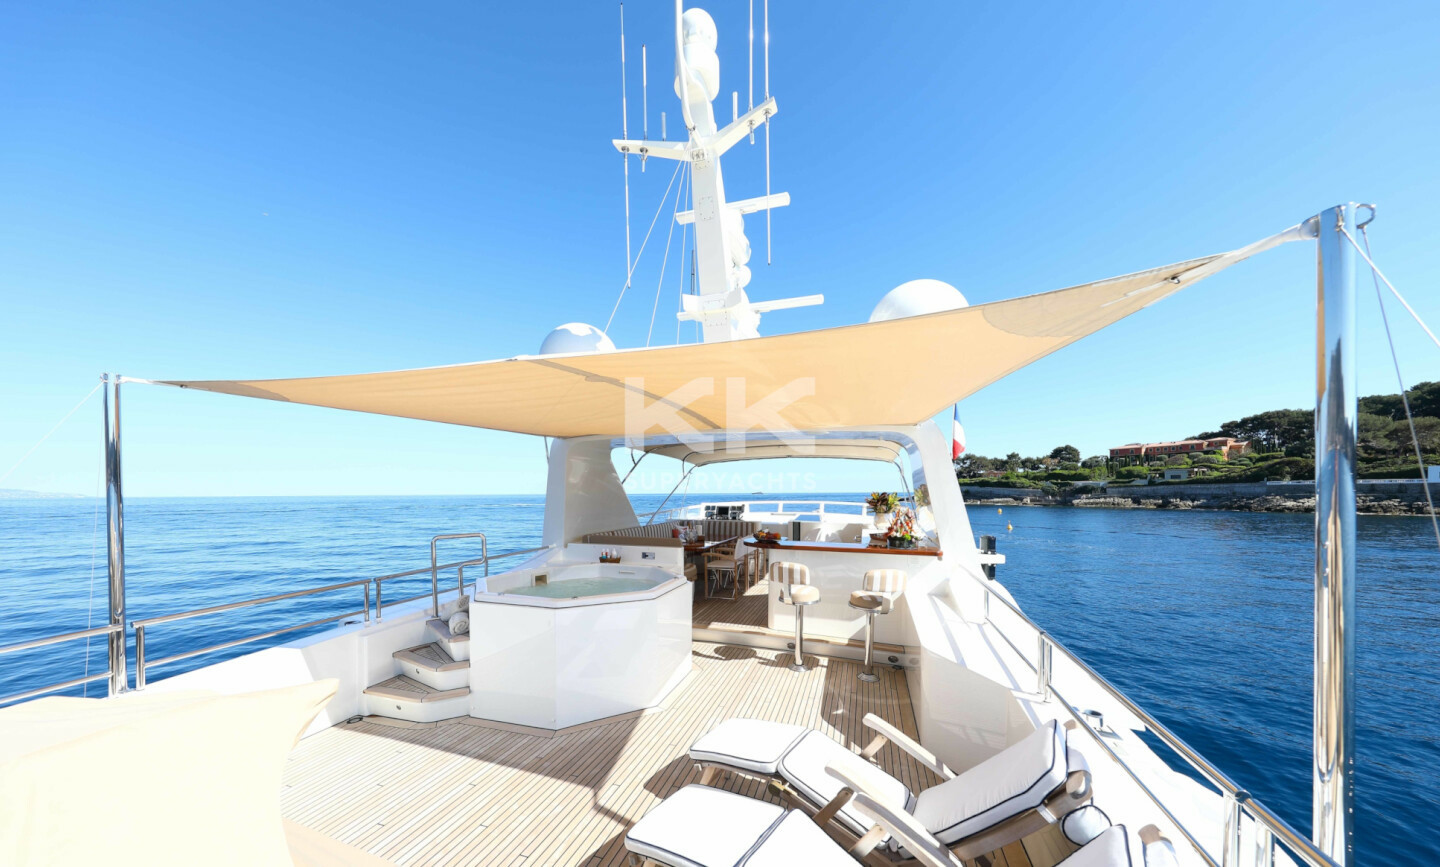 Etoile D'azur yacht for Charter 6